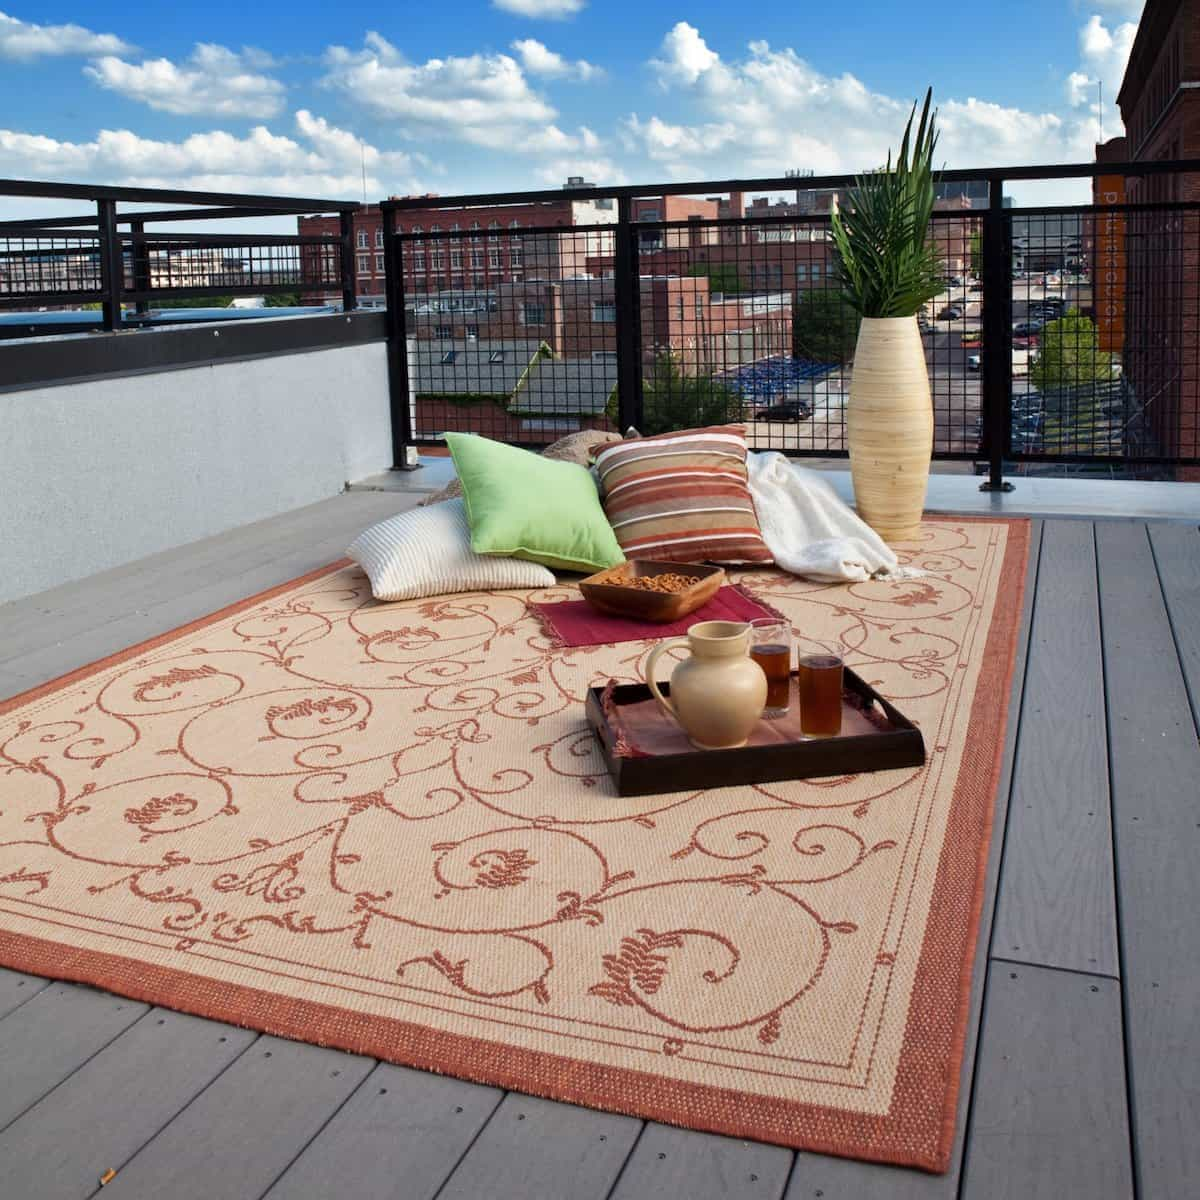 Orian Rugs Outdoor Area Rug Collection For Outdoor Ambiance (View 2 of 15)